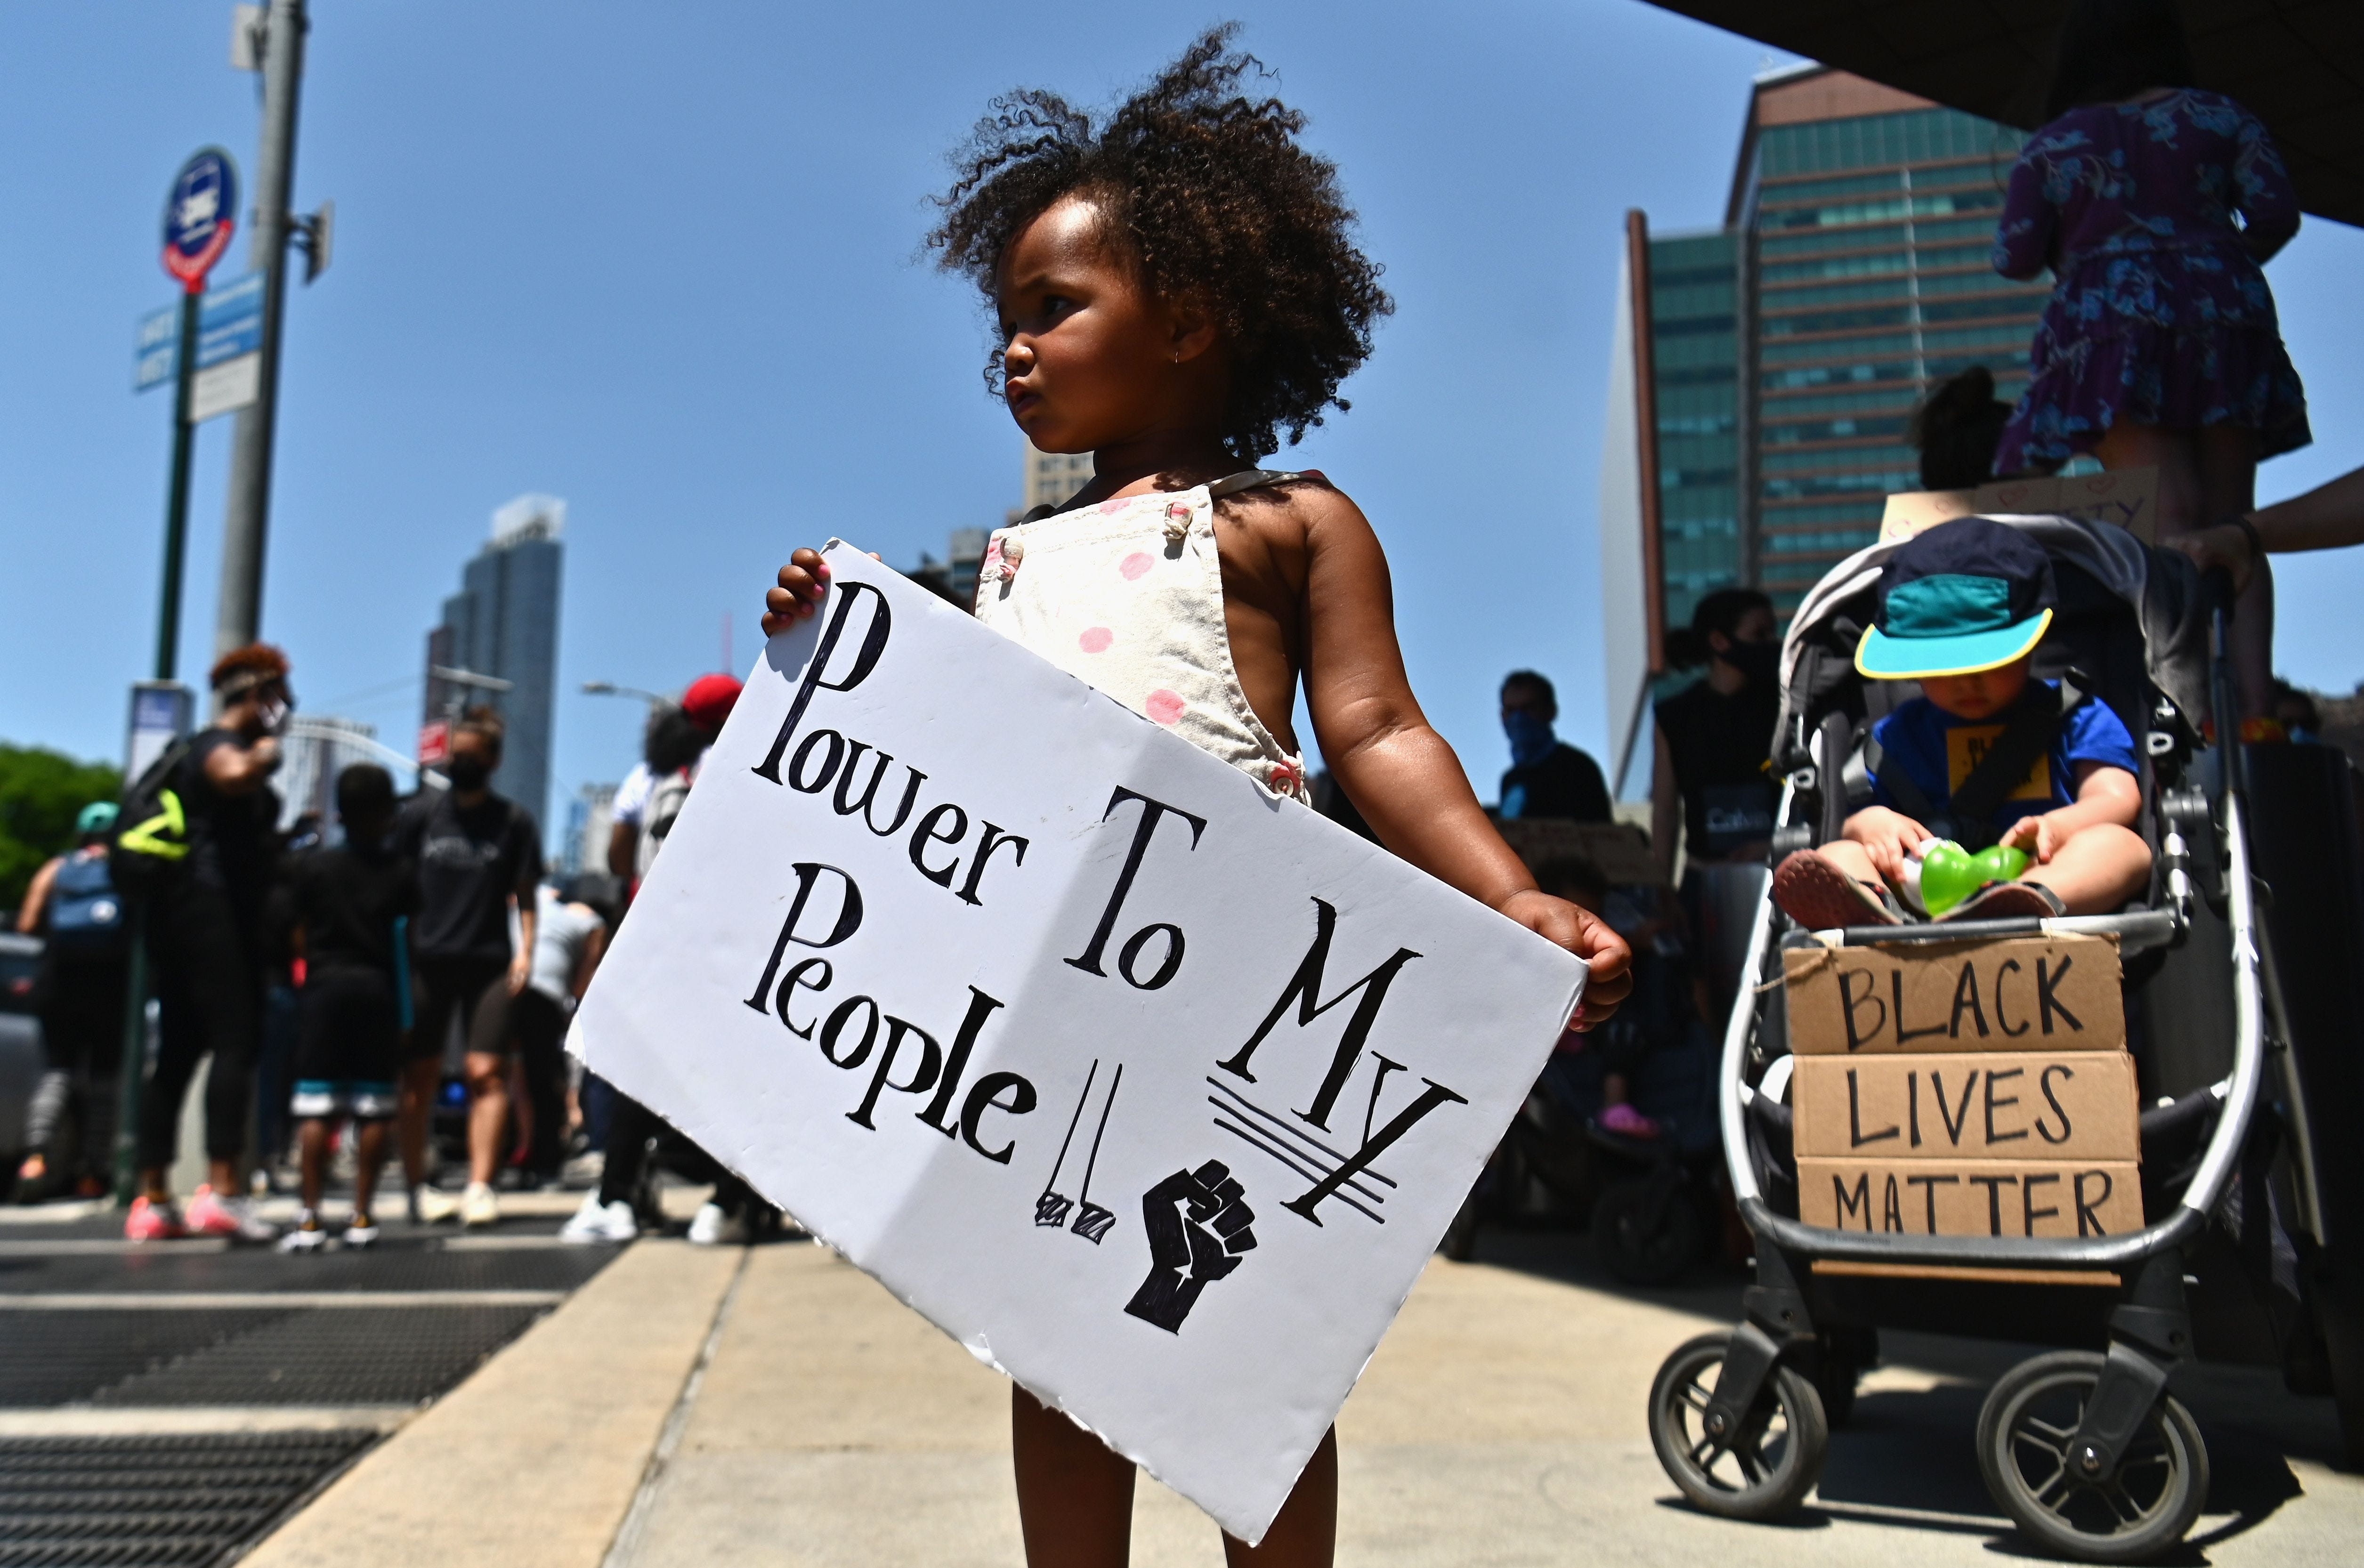 Families participate in a children's march in solidarity with the Black Lives Matter movement and national protests against police brutality on June 9, 2020, in the Brooklyn borough of New York City.